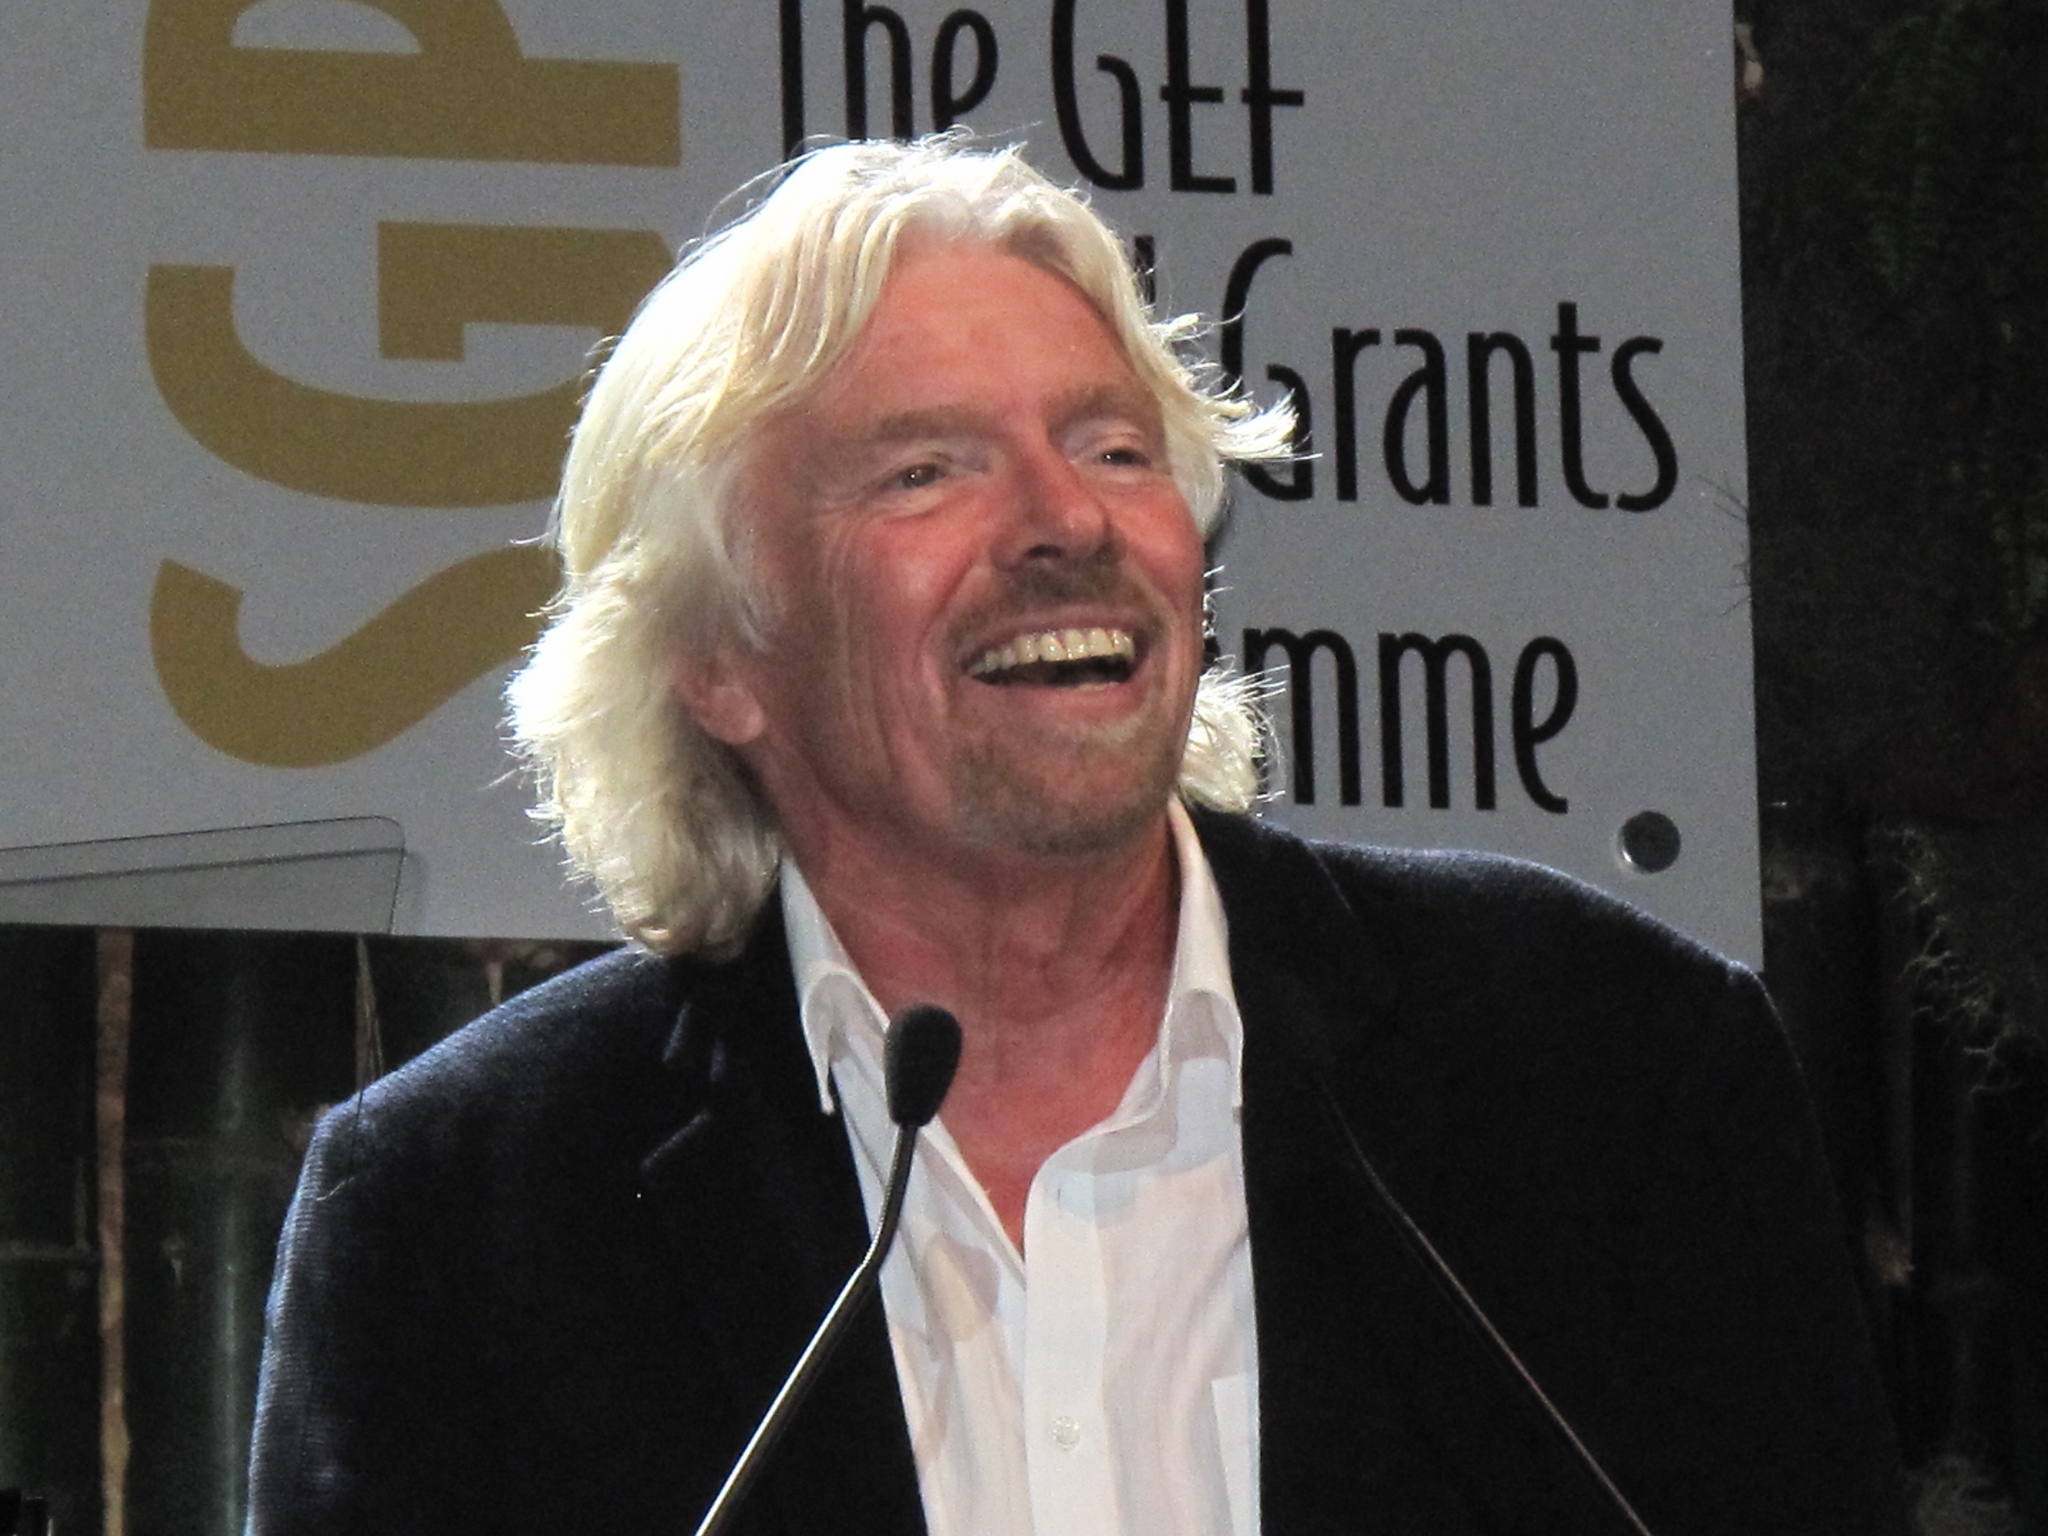 Richard Branson receives the Cannabis Culture Award in the name of the World Commission on Drug Policy in 2012 (CC.Unclimatechange)